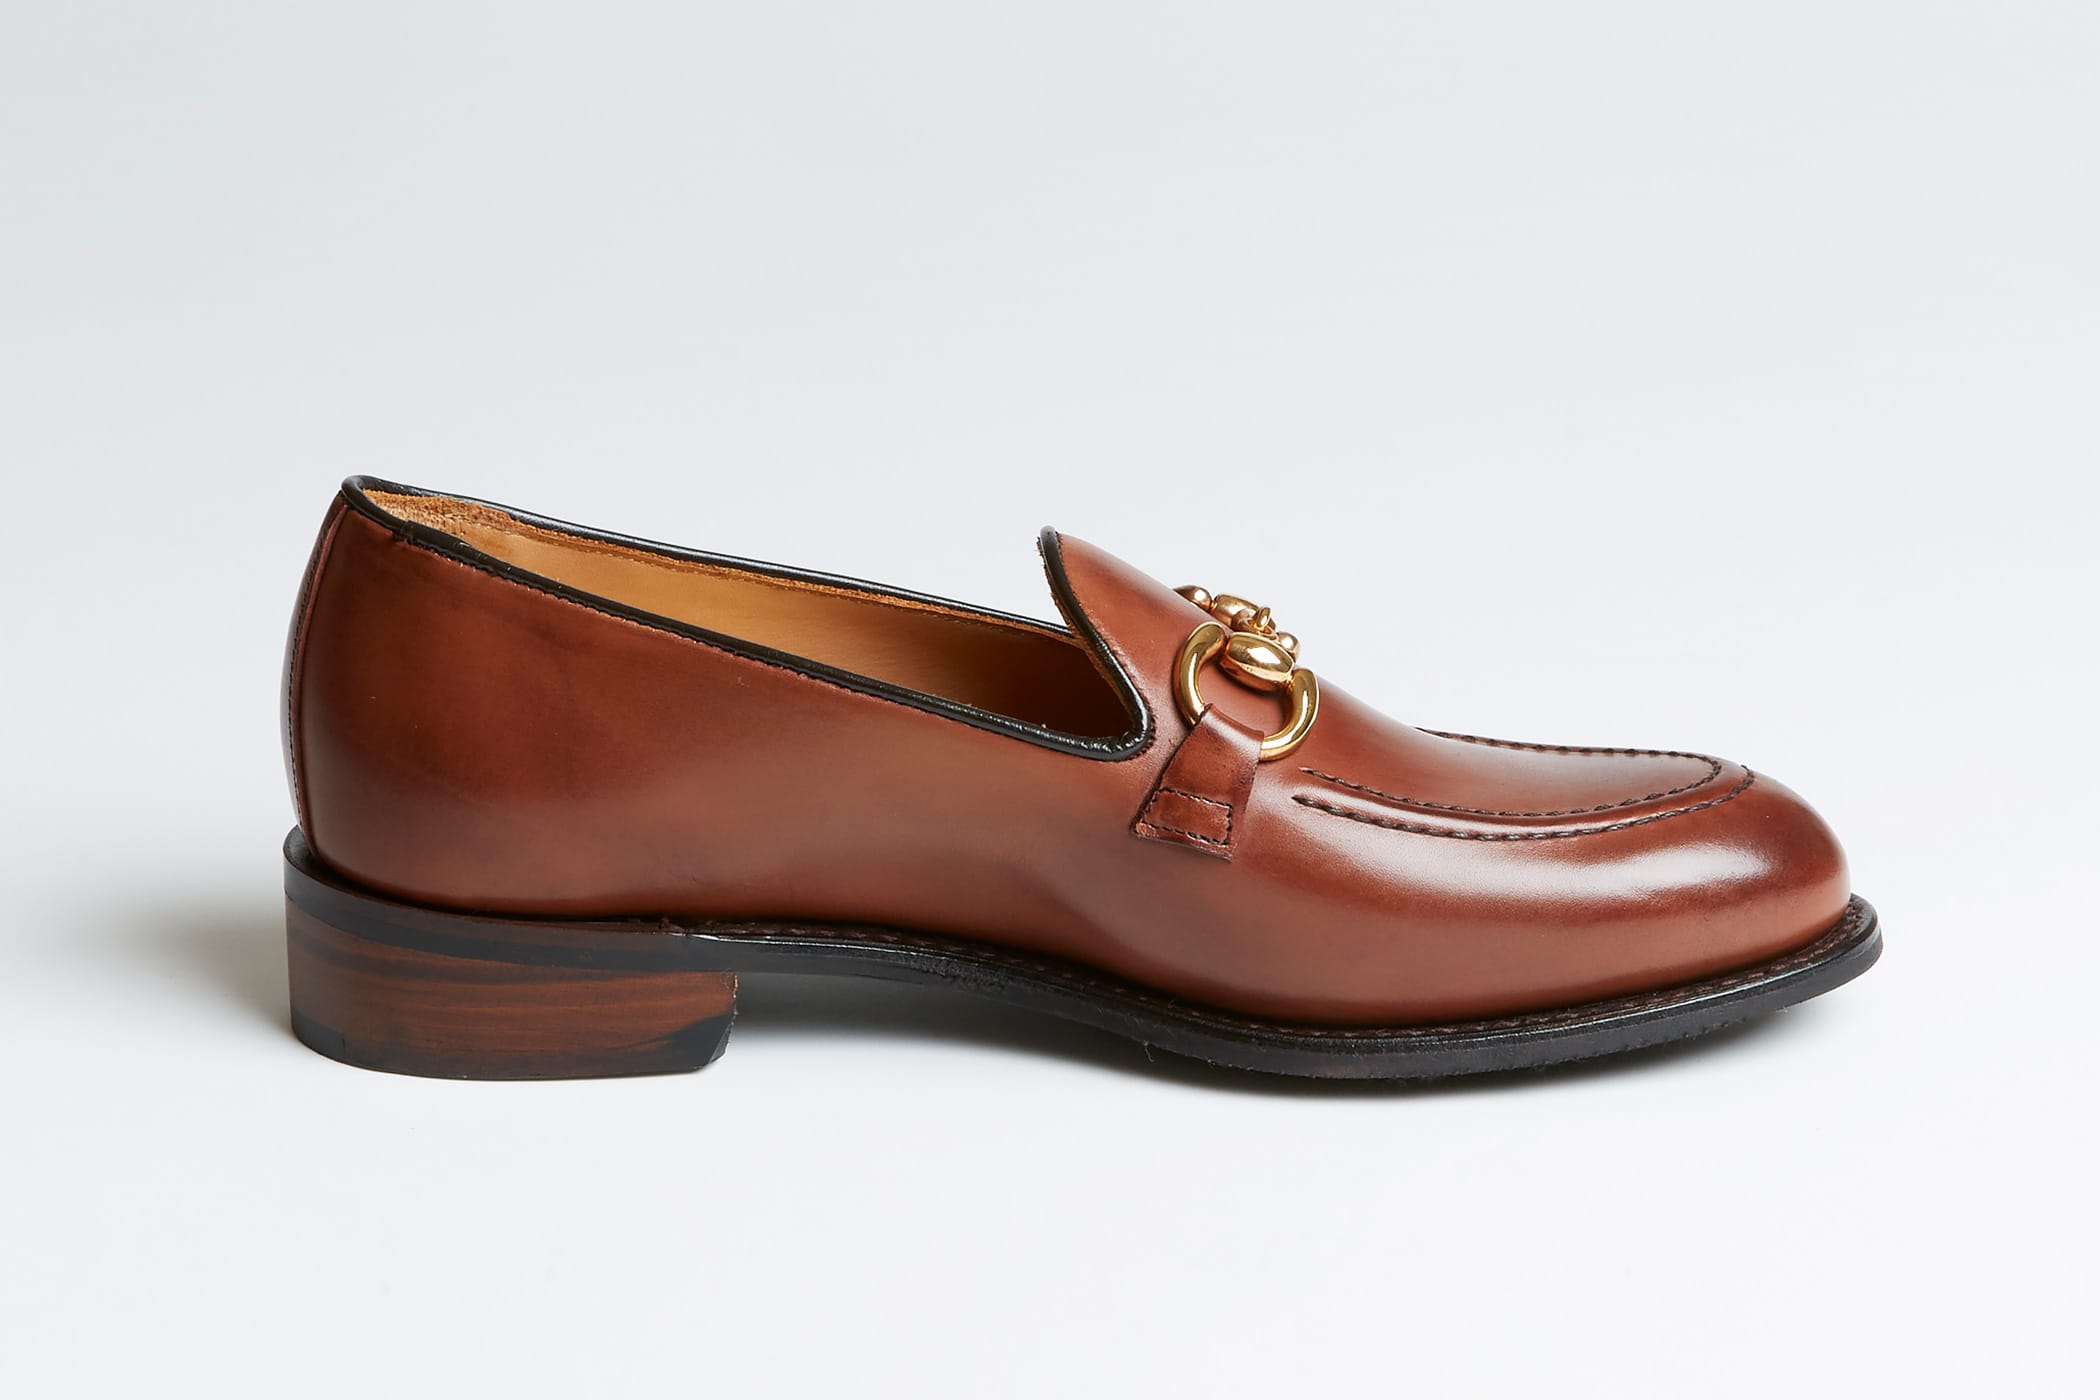 Adapt itself to any BRITISH MADE comment JOSEPH CHEANEY Bitto loafers coordinates, is form slimly